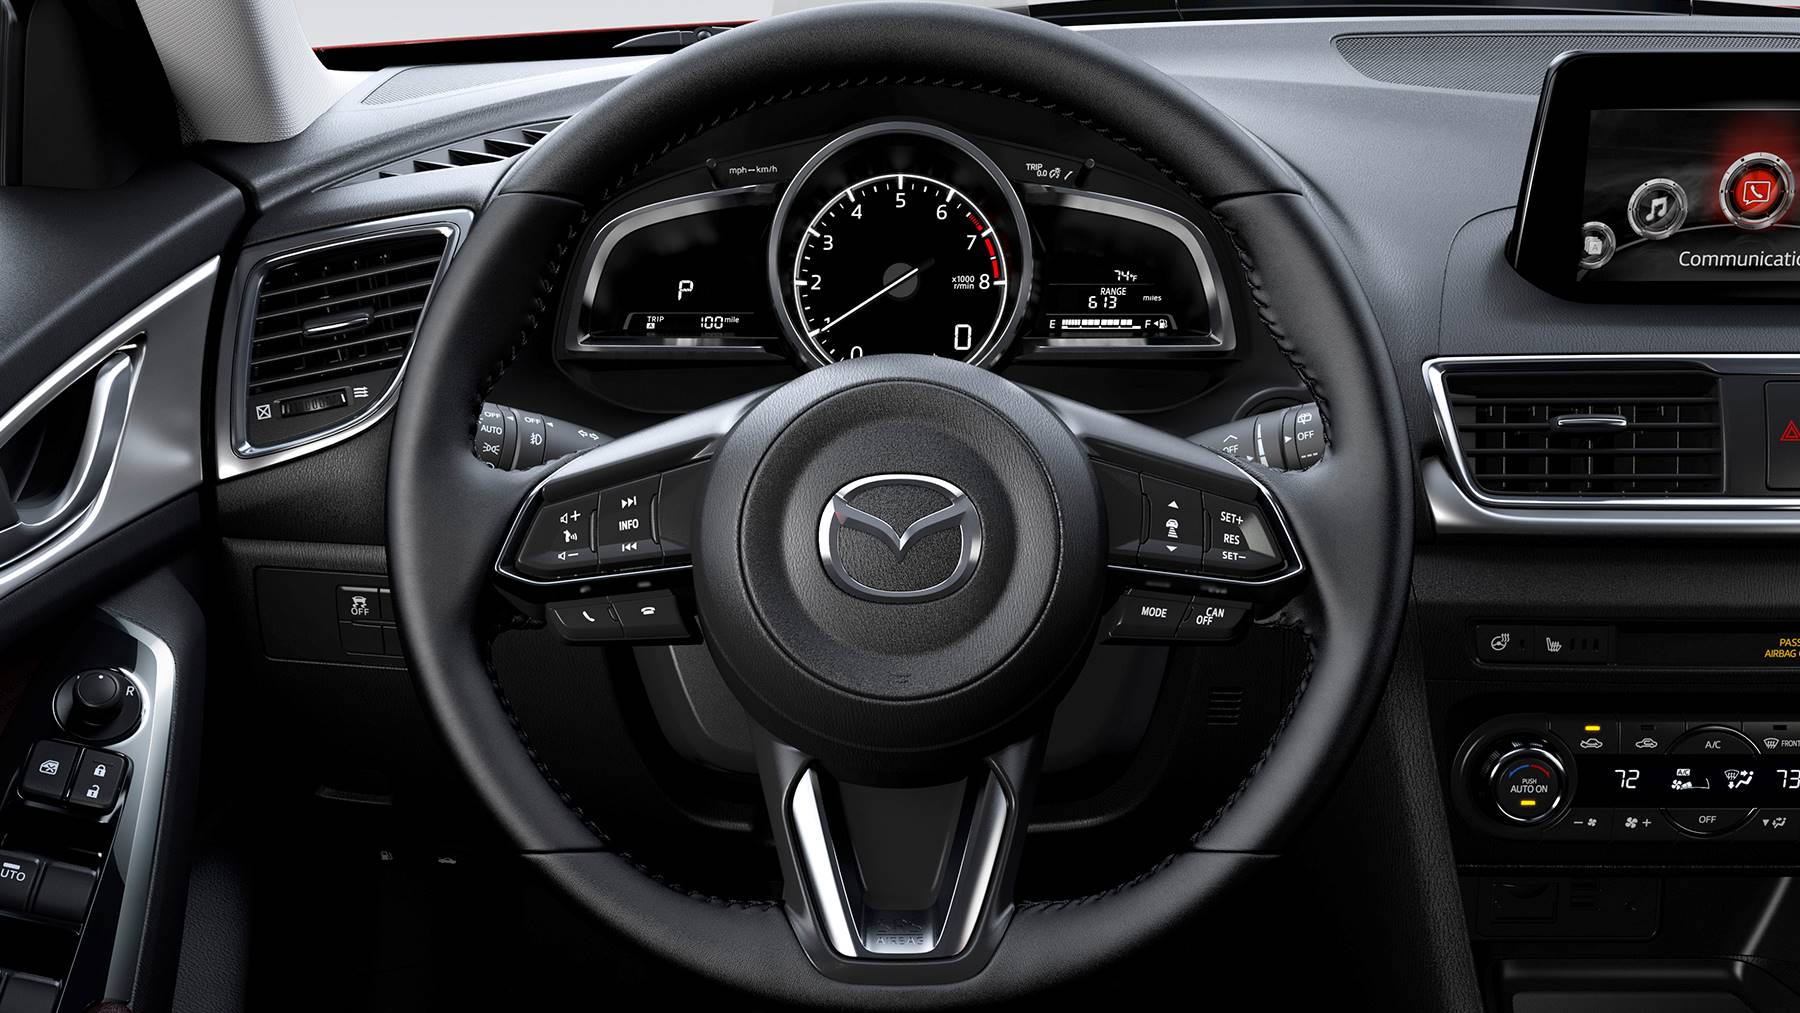 Take Command in the 2018 Mazda3!